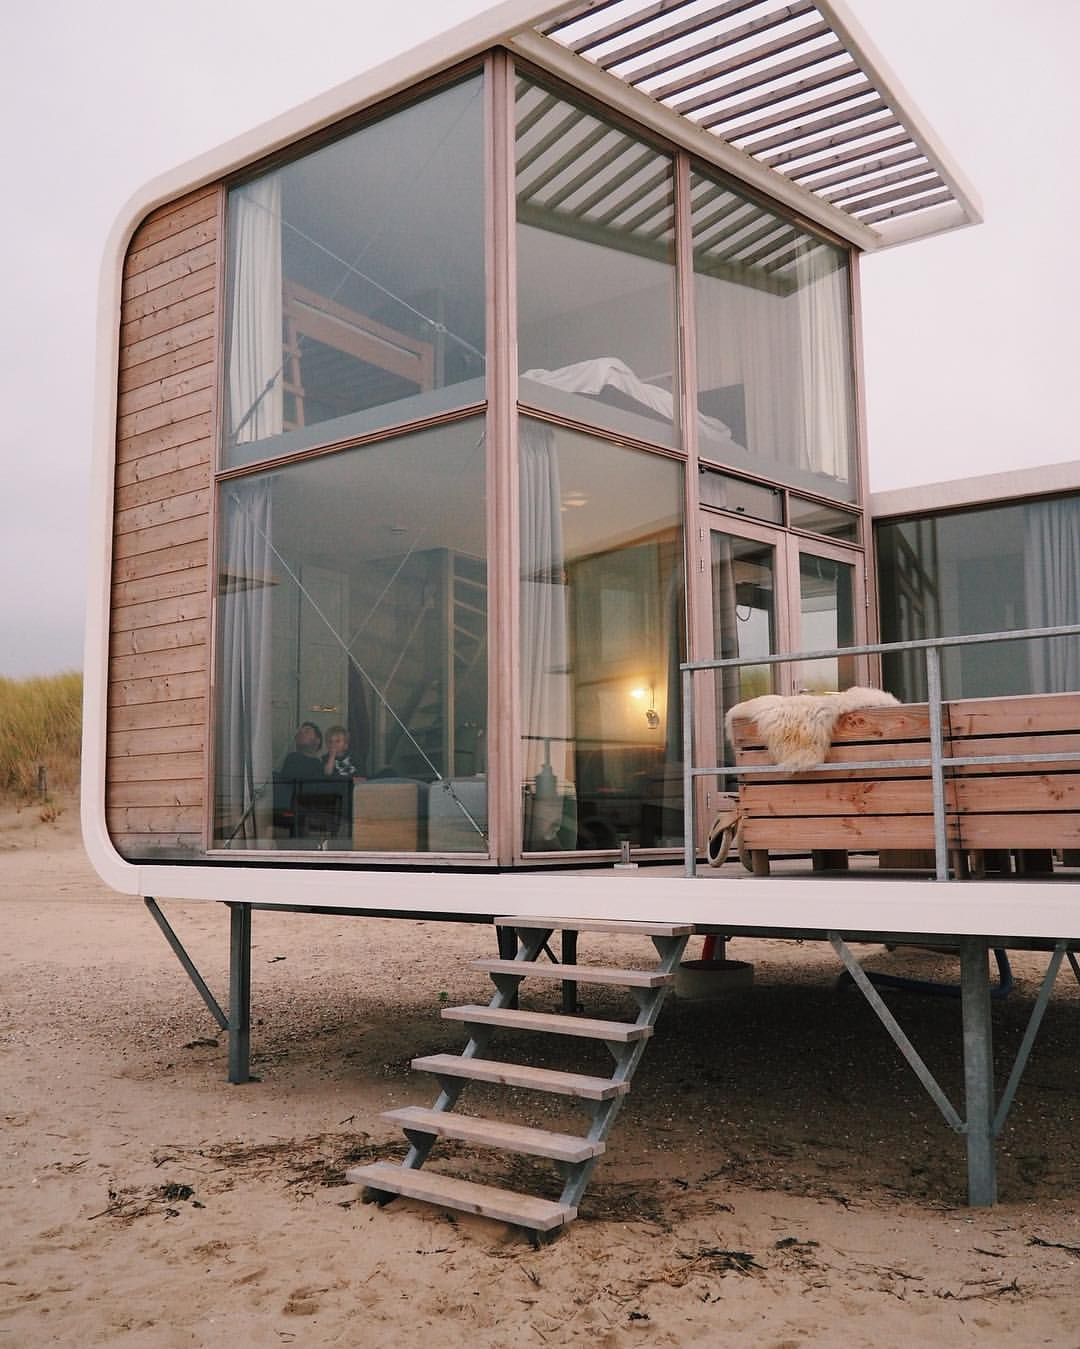 Modern Tiny House Cabin: See This Instagram Photo By @enstijl • 2,579 Likes